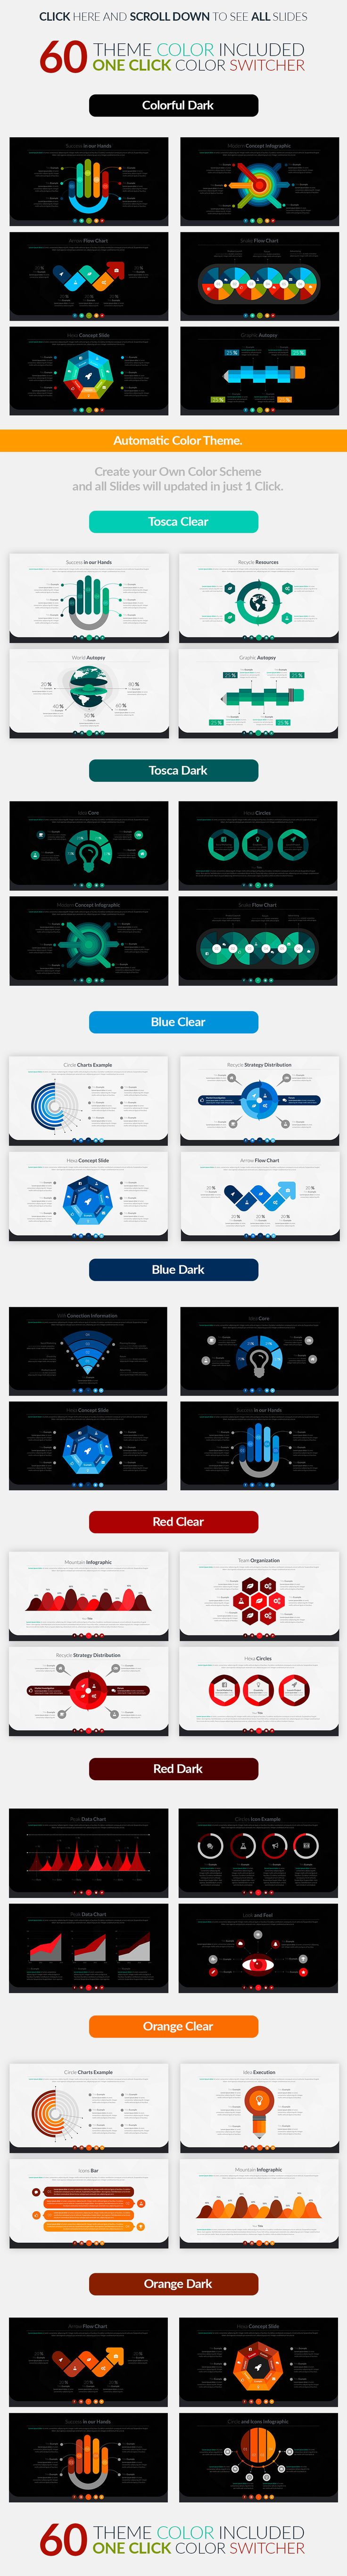 Deal Finder | Powerpoint Template by Zacomic Studios on Creative Market